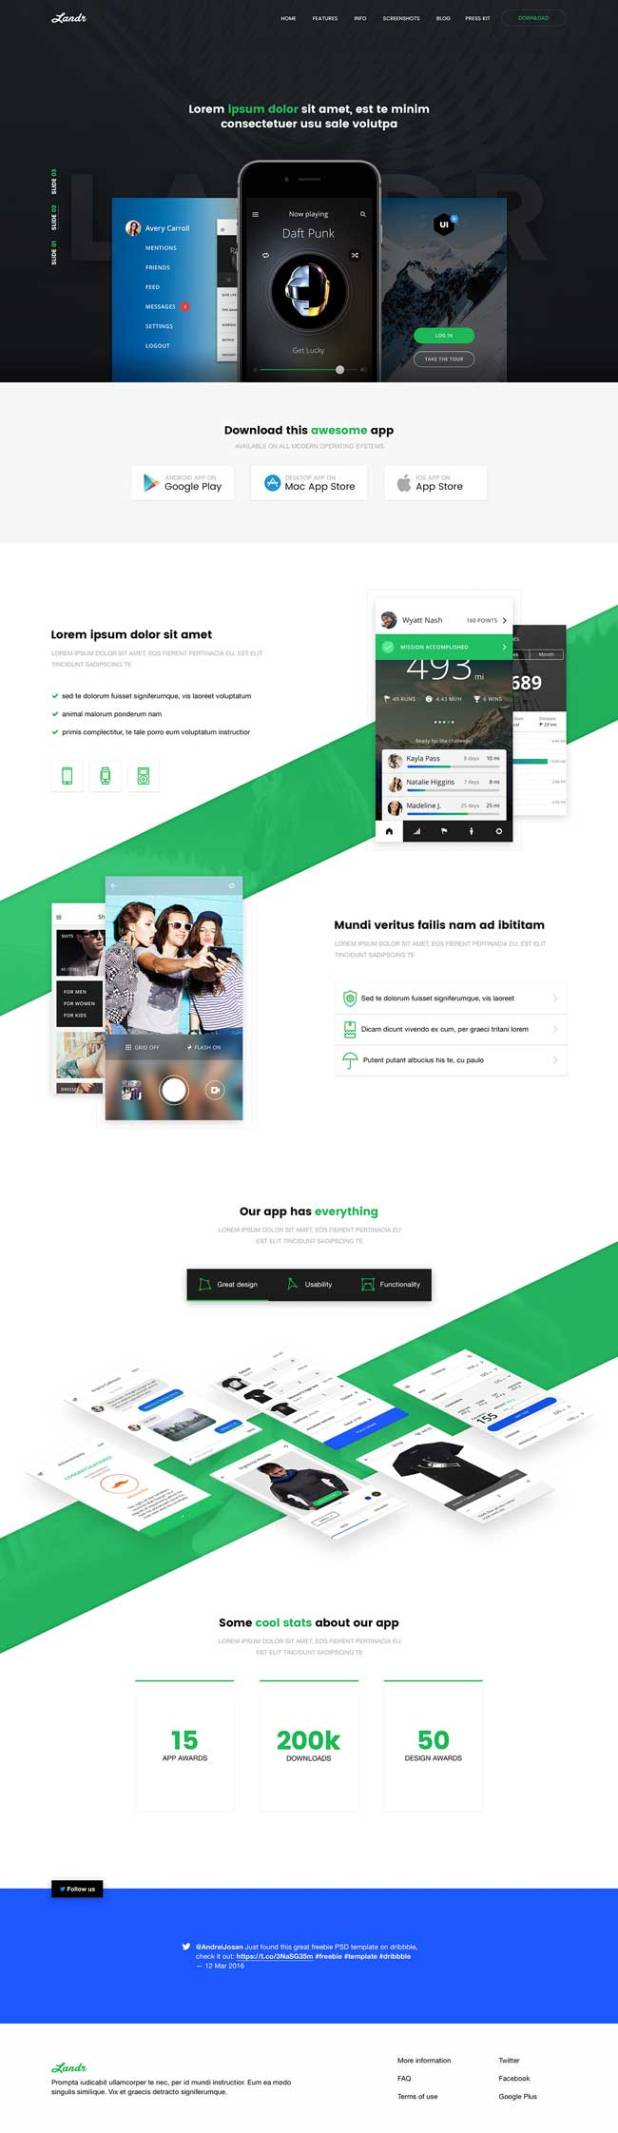 Landr-Free-App-Landing-Page-PSD-Template-Preview